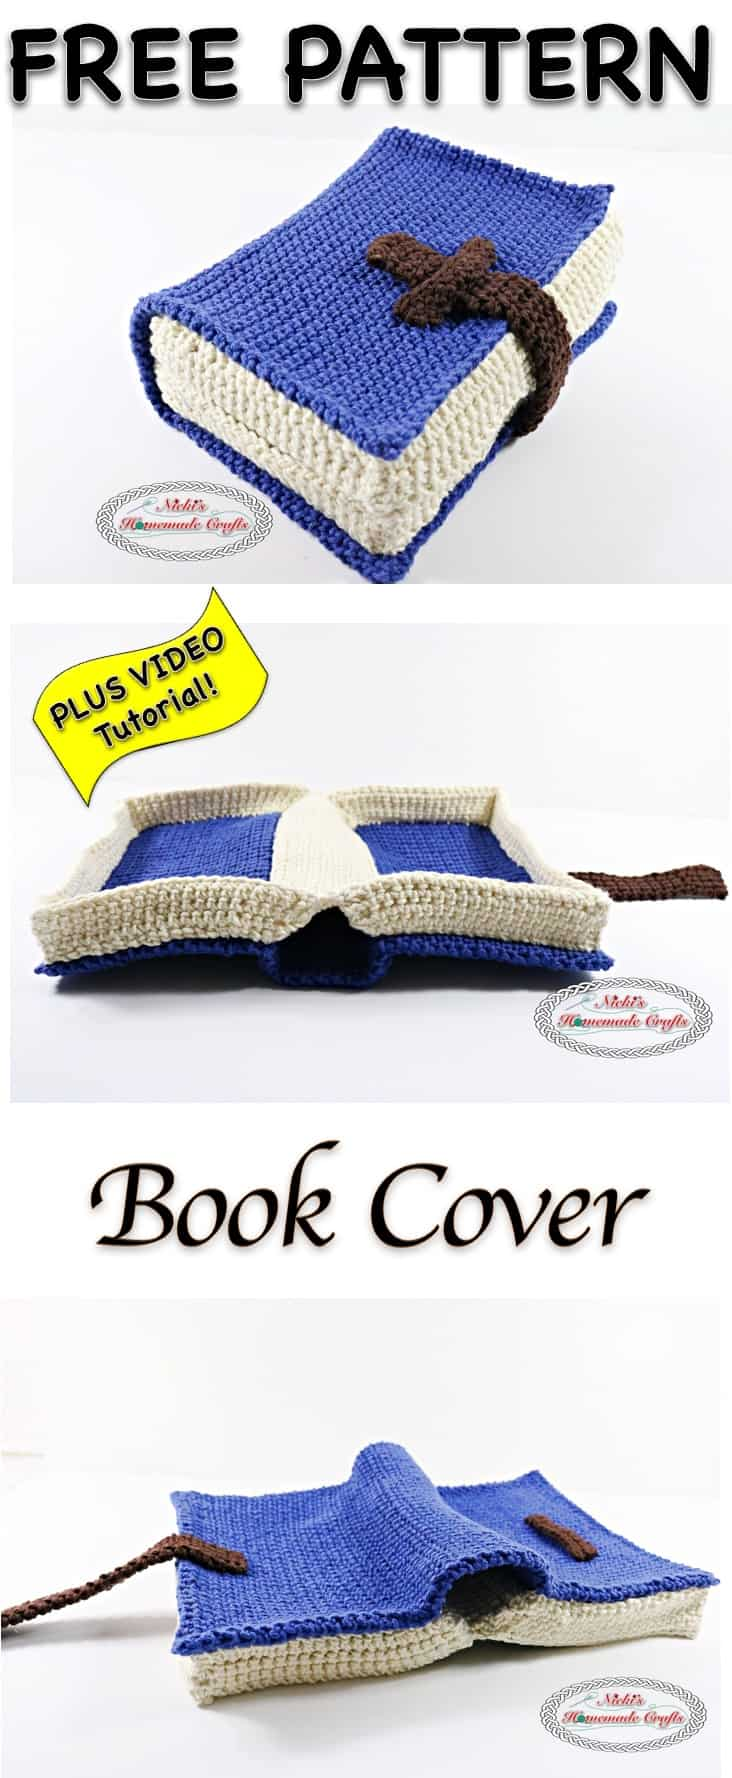 Book Cover Craft S : Book cover free crochet pattern nicki s homemade crafts